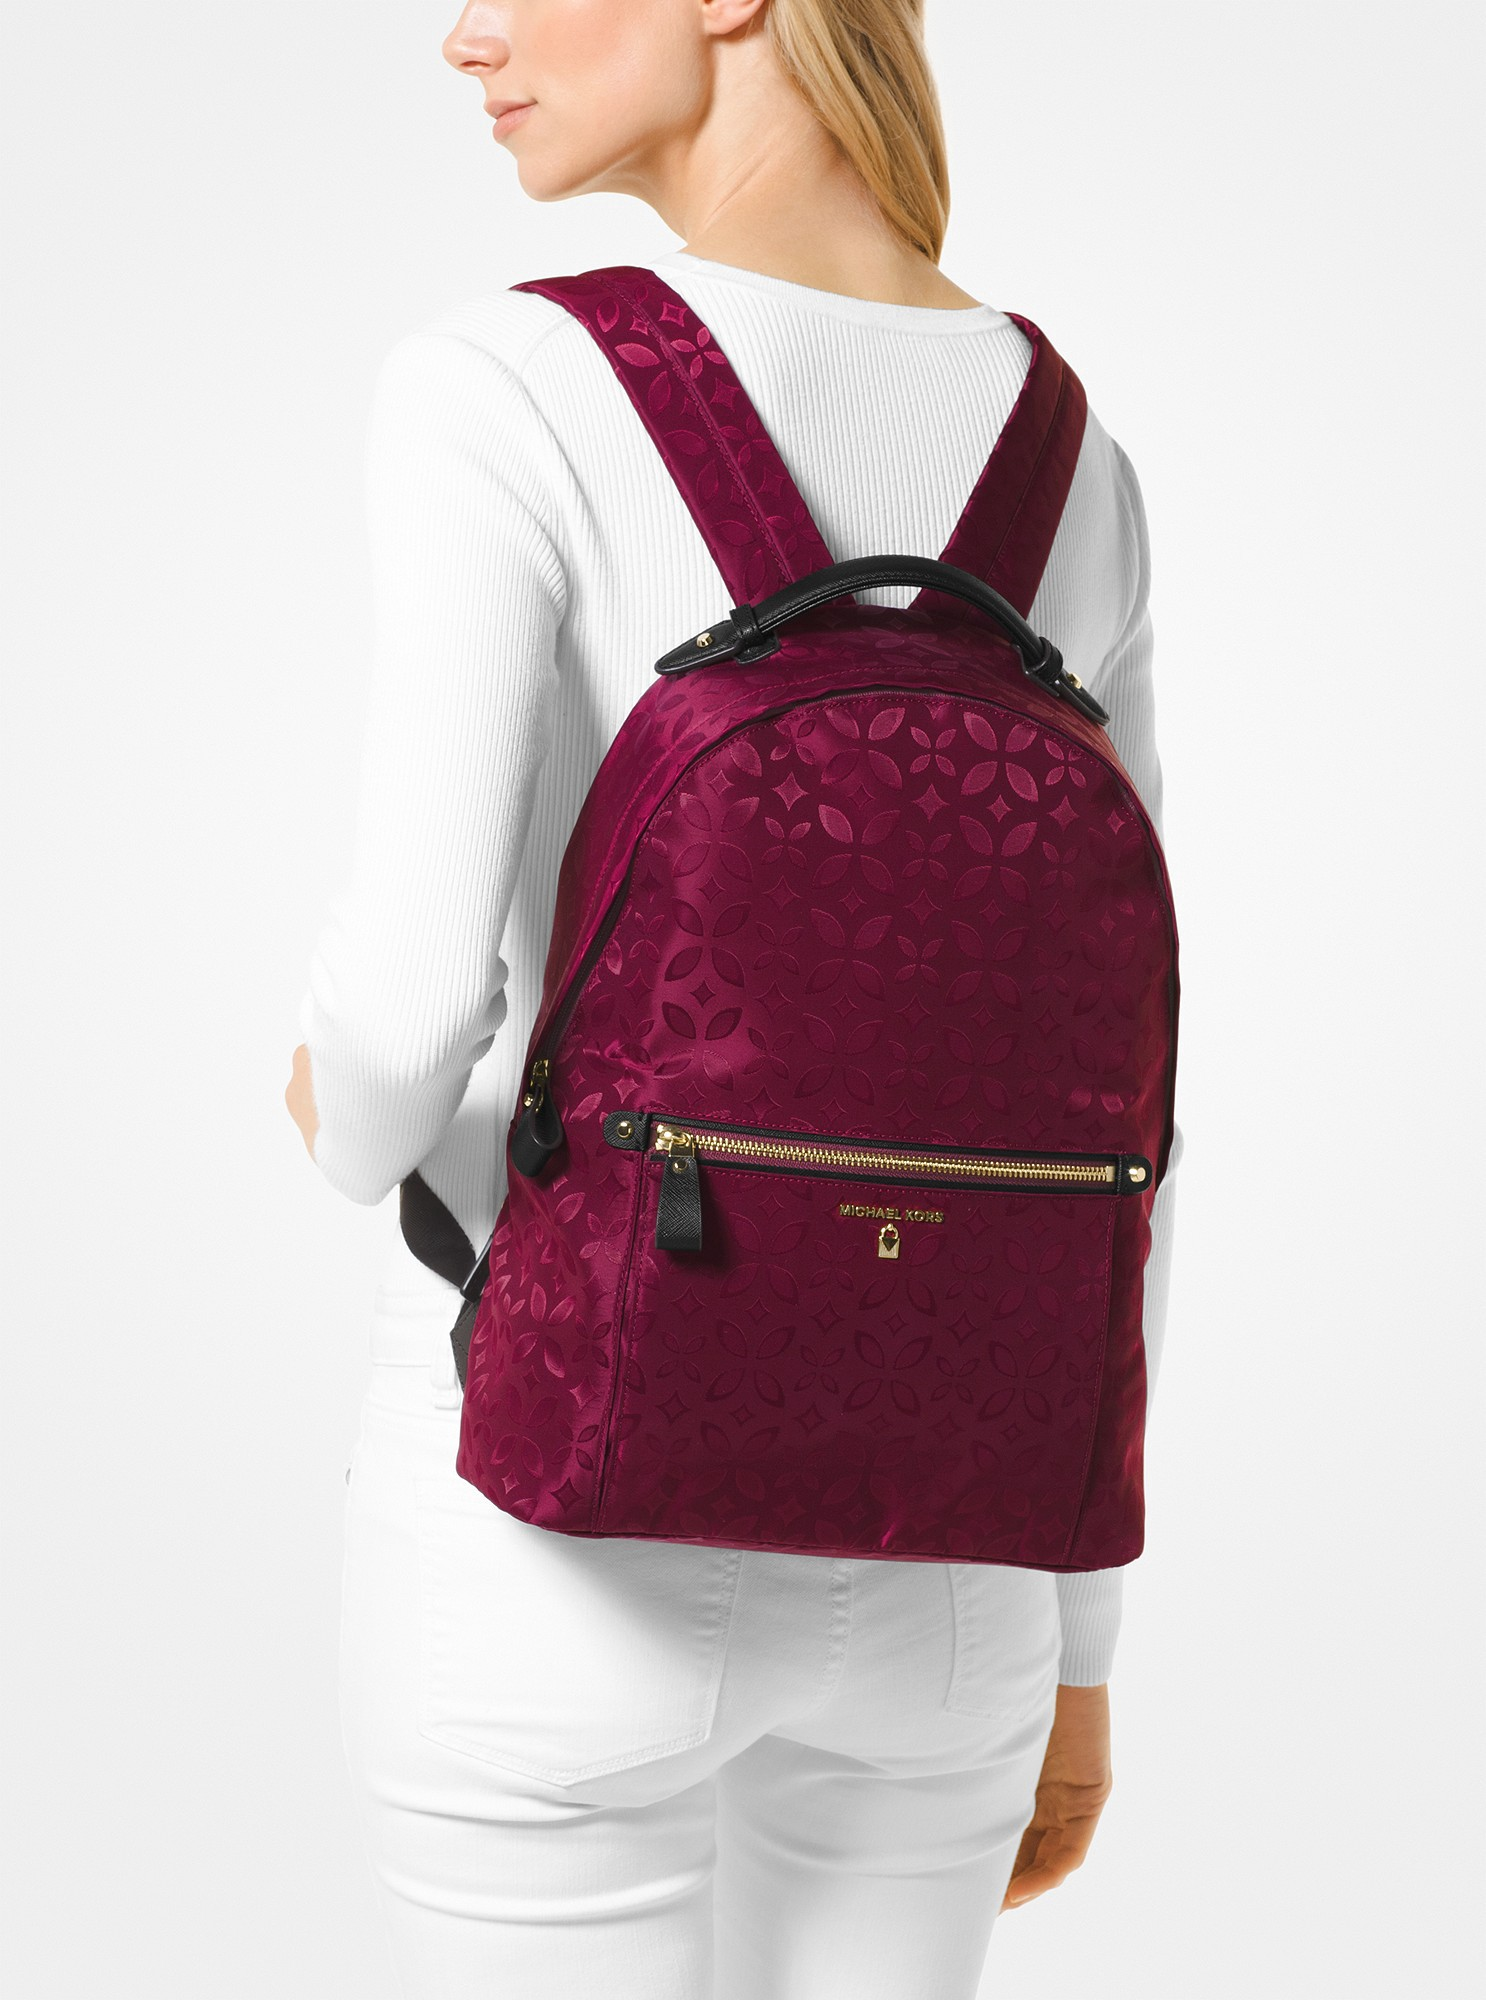 076757df7f3318 Michael Kors Kelsey Large Floral Nylon Backpack - Plum | Products ...